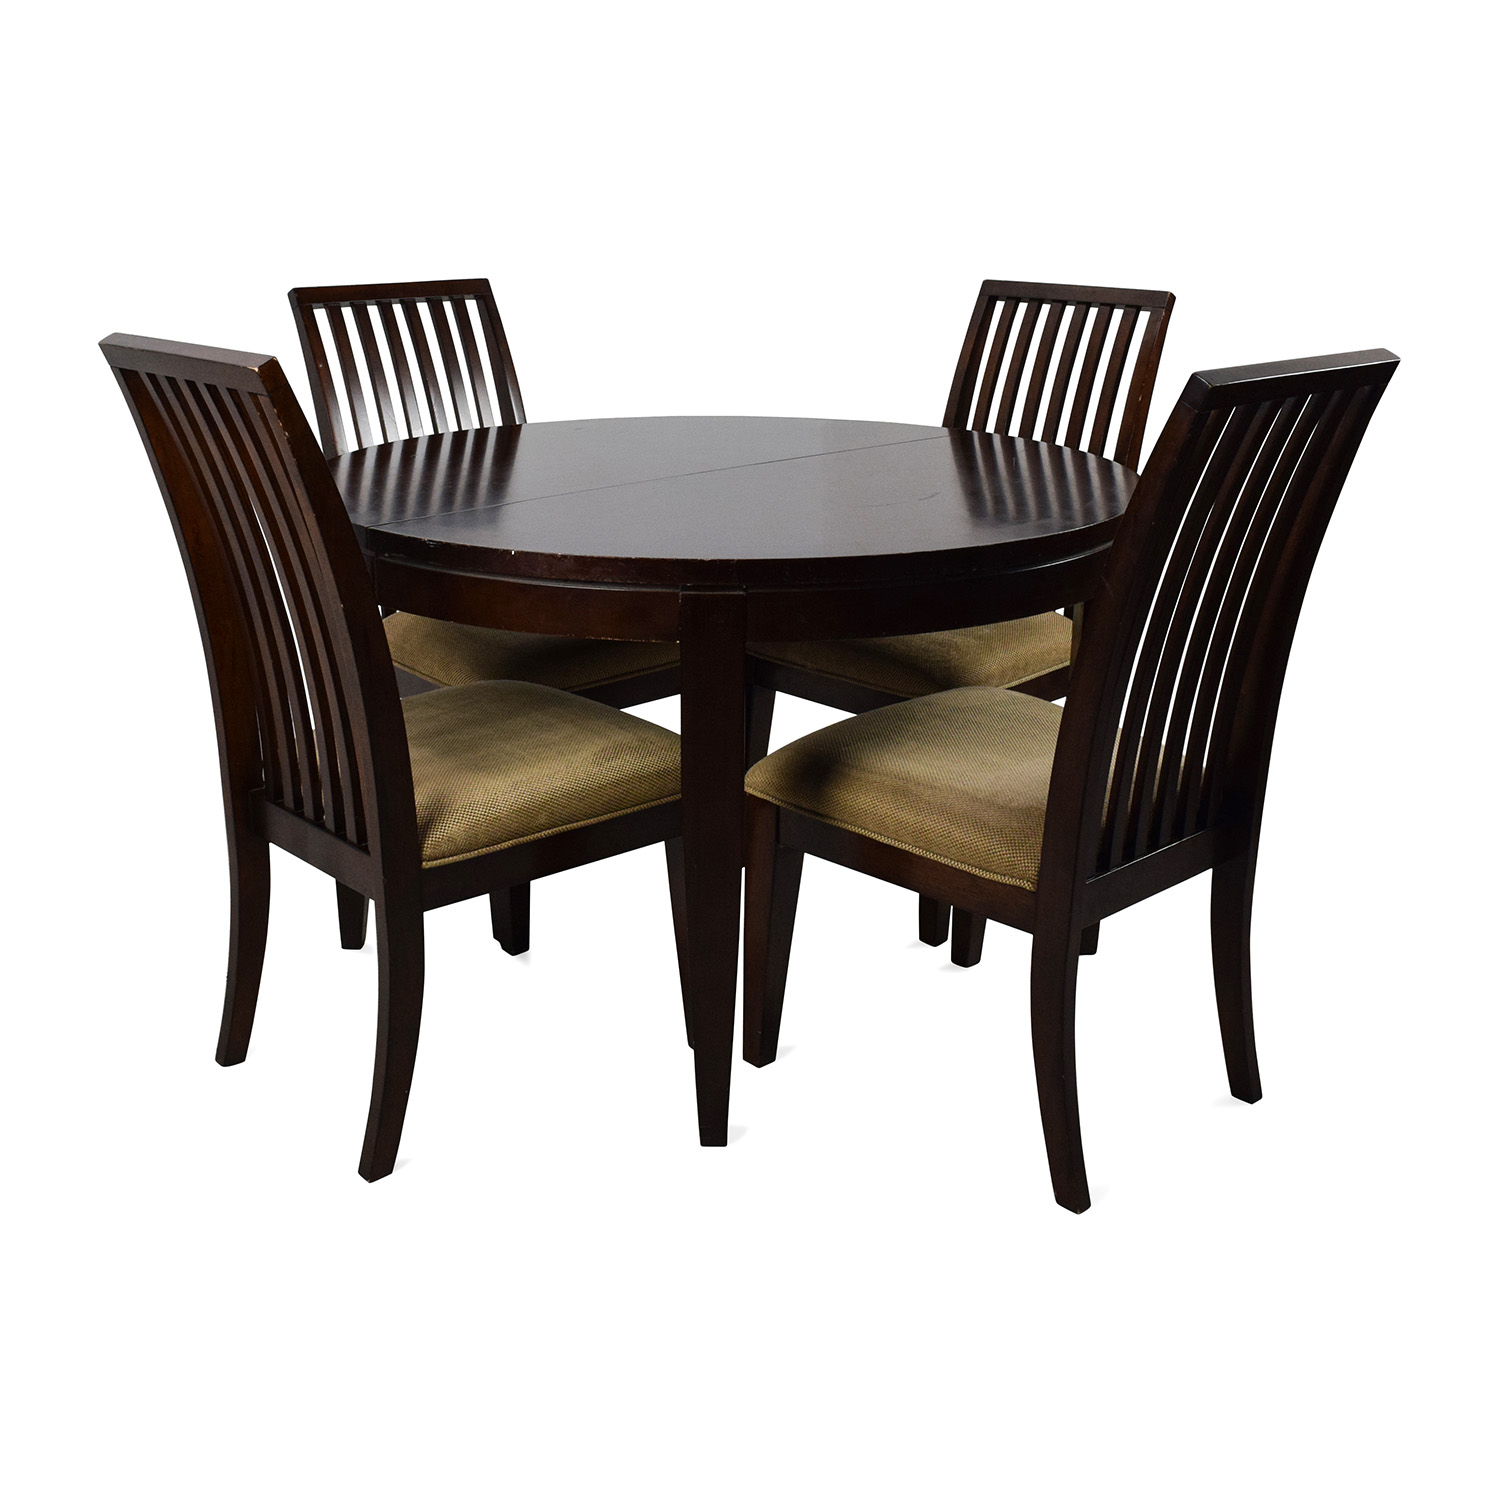 shop Macys Macys Bradford Extendable Dining Table with 4 Chairs online